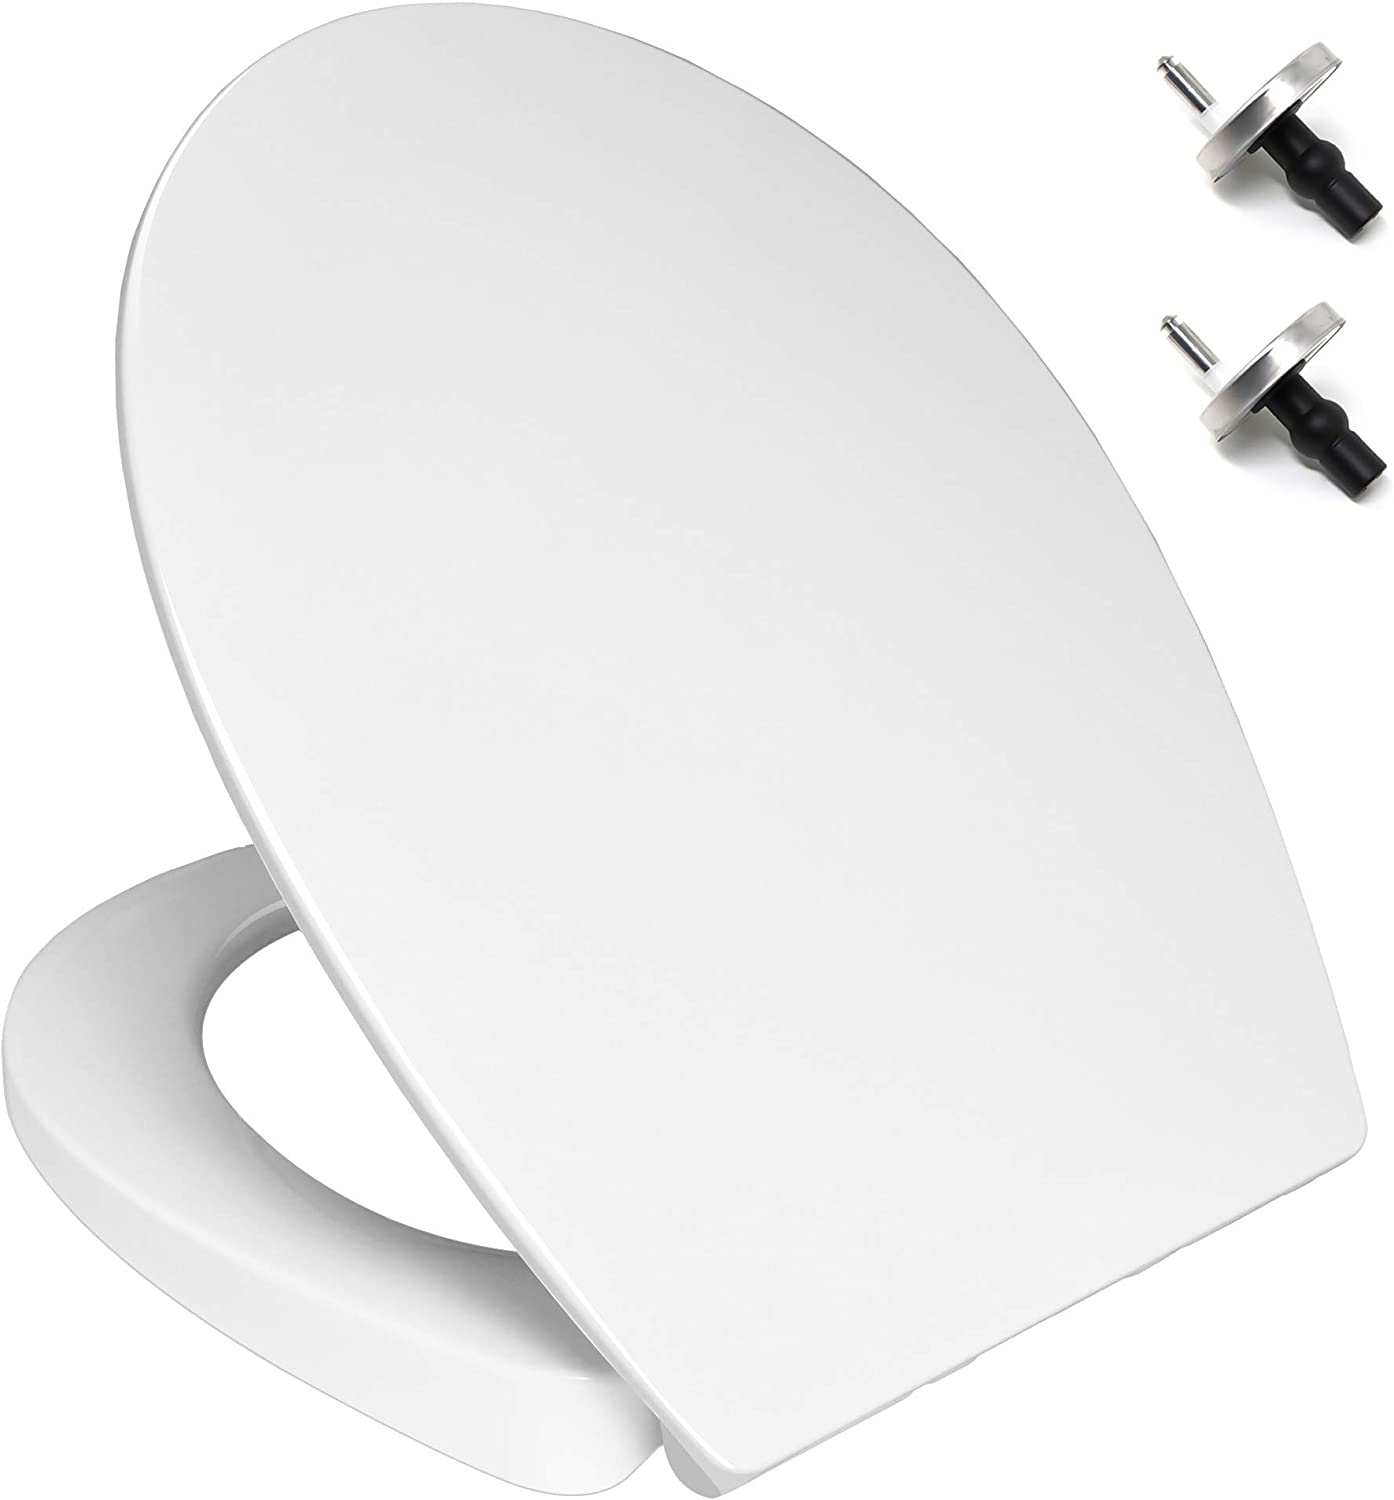 TOILET SEAT, Soft Close Quick Release Toilet Seat, White Urea-Formaldehyde Anti-Bacterial Material (SMART LOOK) WC Loo Seat with Oval Shape Lid - Dual Fixing Stainless Hinges - By MASS DYNAMIC